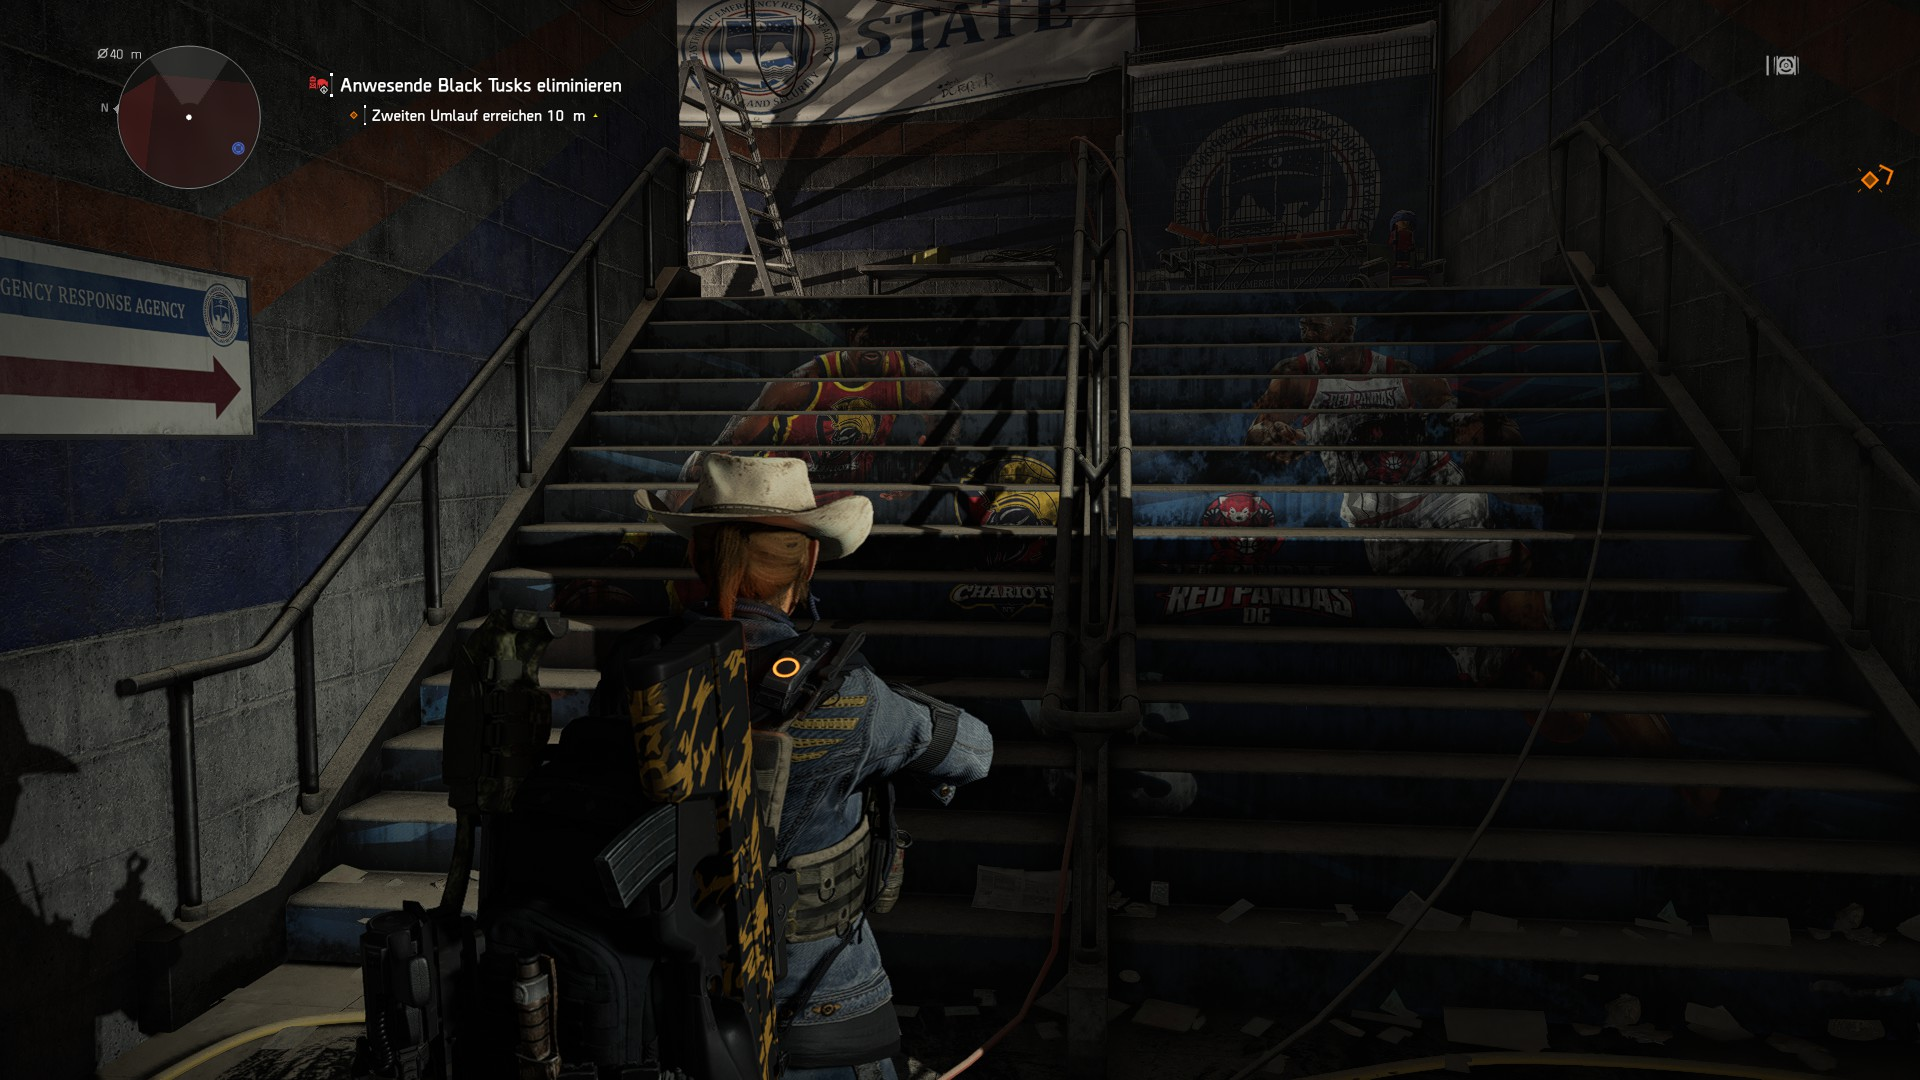 Tom Clancy's The Division® 22019-5-9-3-35-32.jpg